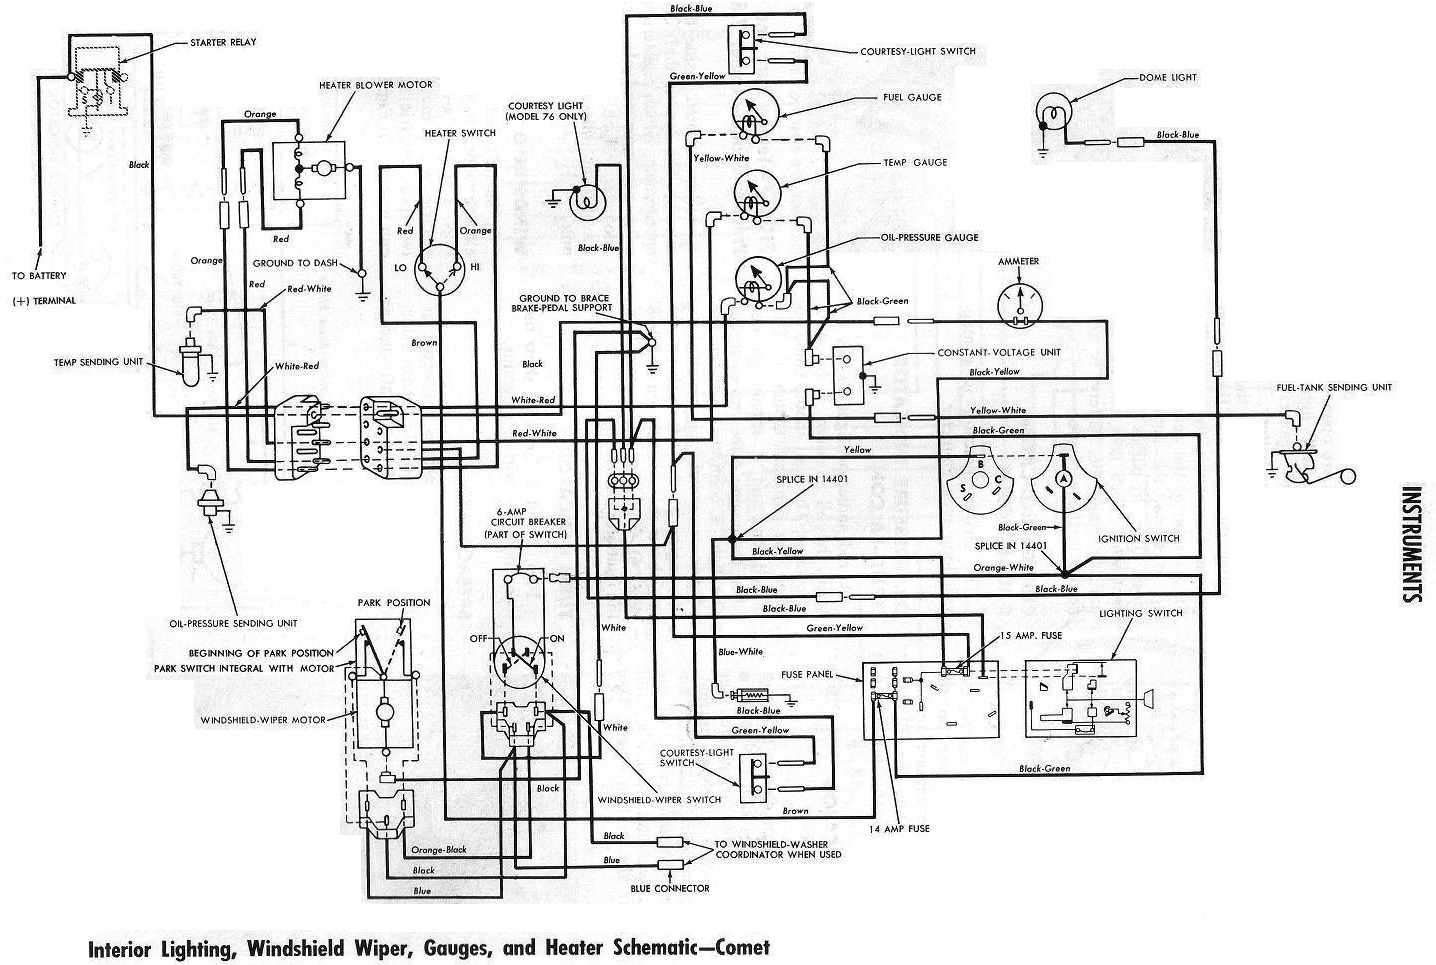 Mercury+Comet+1964+Instrument+Wiring+Diagram?resize=665%2C447 100 [ wiring diagram for hkc alarm ] recommended home security 65 comet wiring diagram at soozxer.org